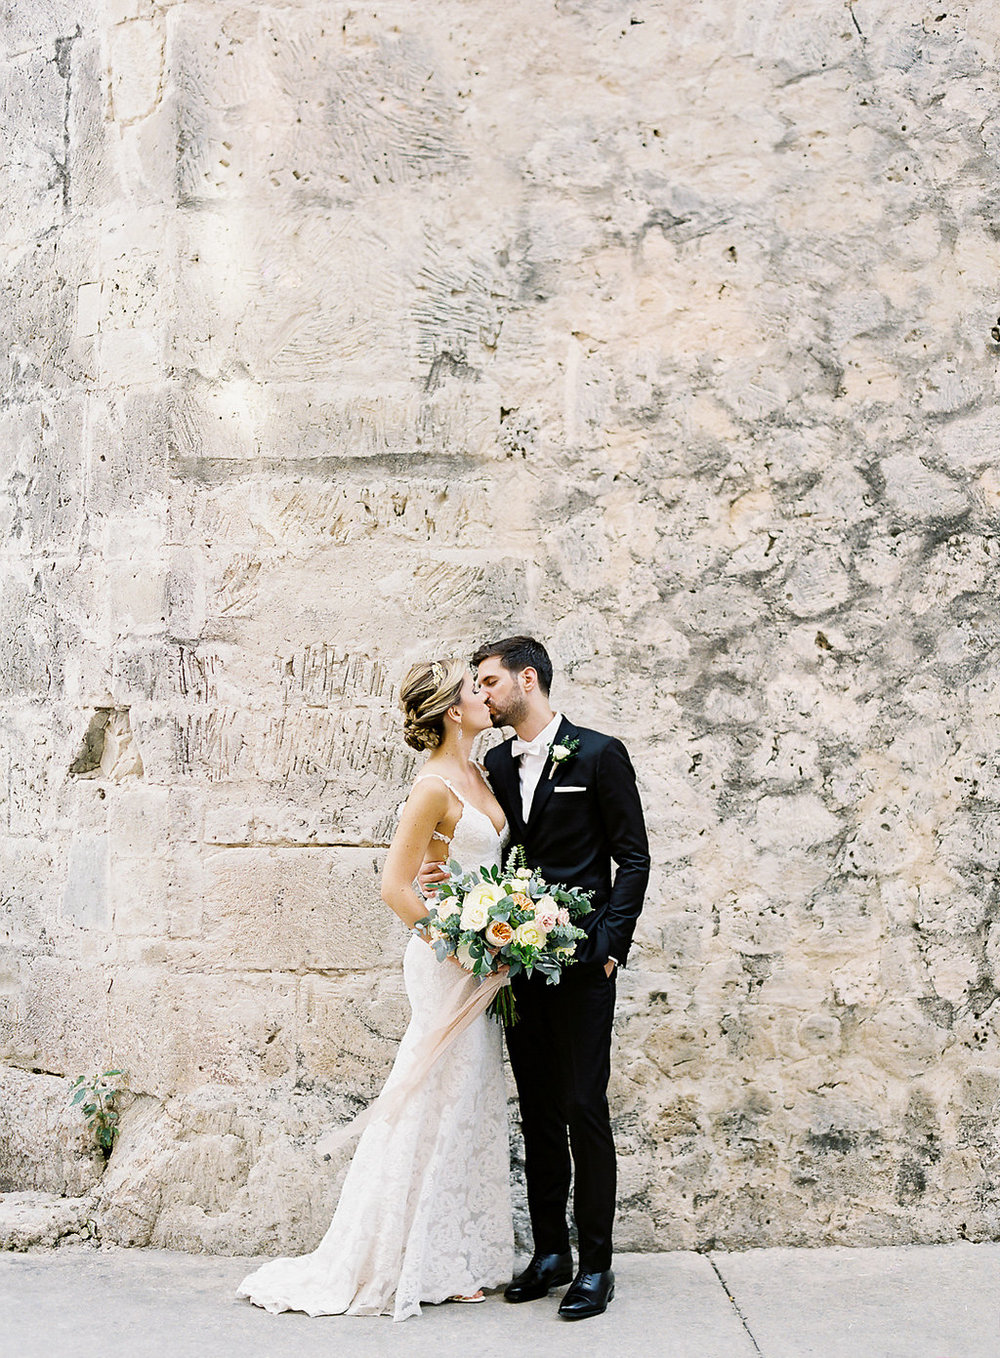 Fine art film photographer photography wedding engagement washington DC cartegena columbia destination modern bride inspiration inspired classic timeless california ny photos styling travel couple